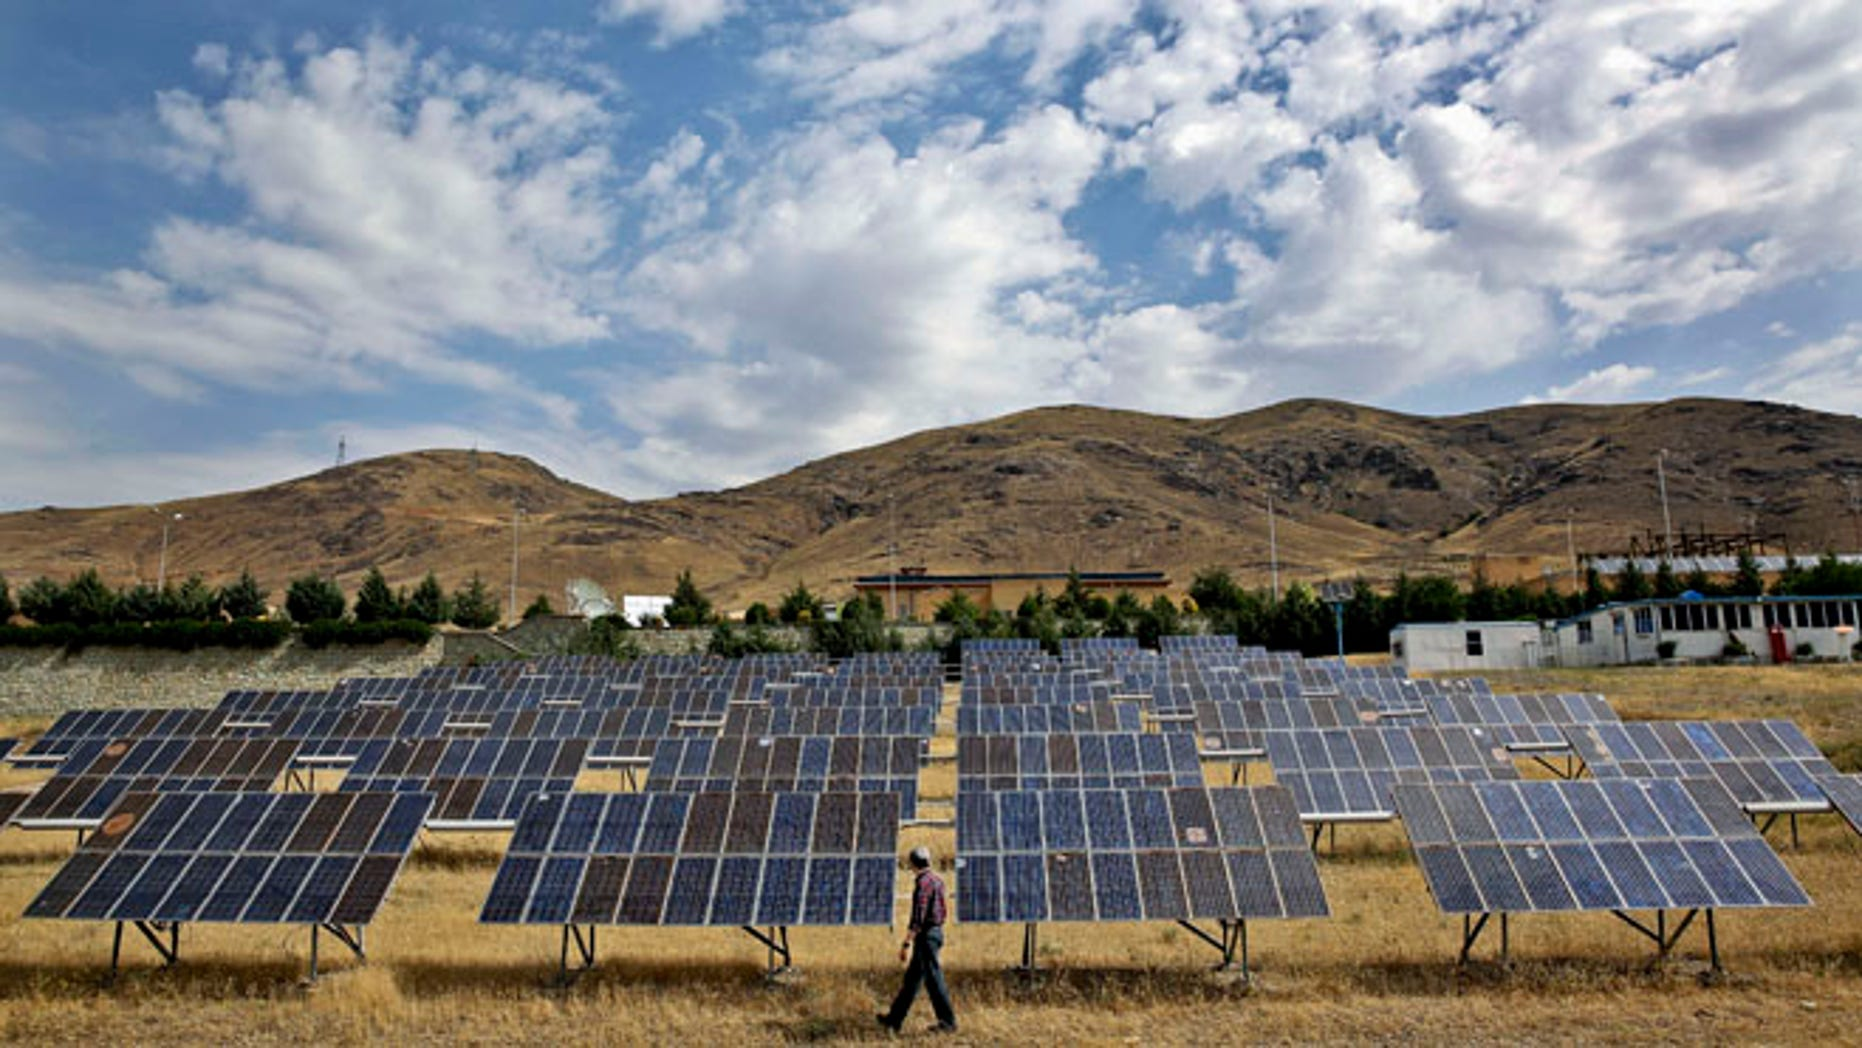 June 22, 2014: A man looks at solar panels at the Taleghan Renewable Energy Site in Taleghan, 99 miles northwest of Tehran, Iran.